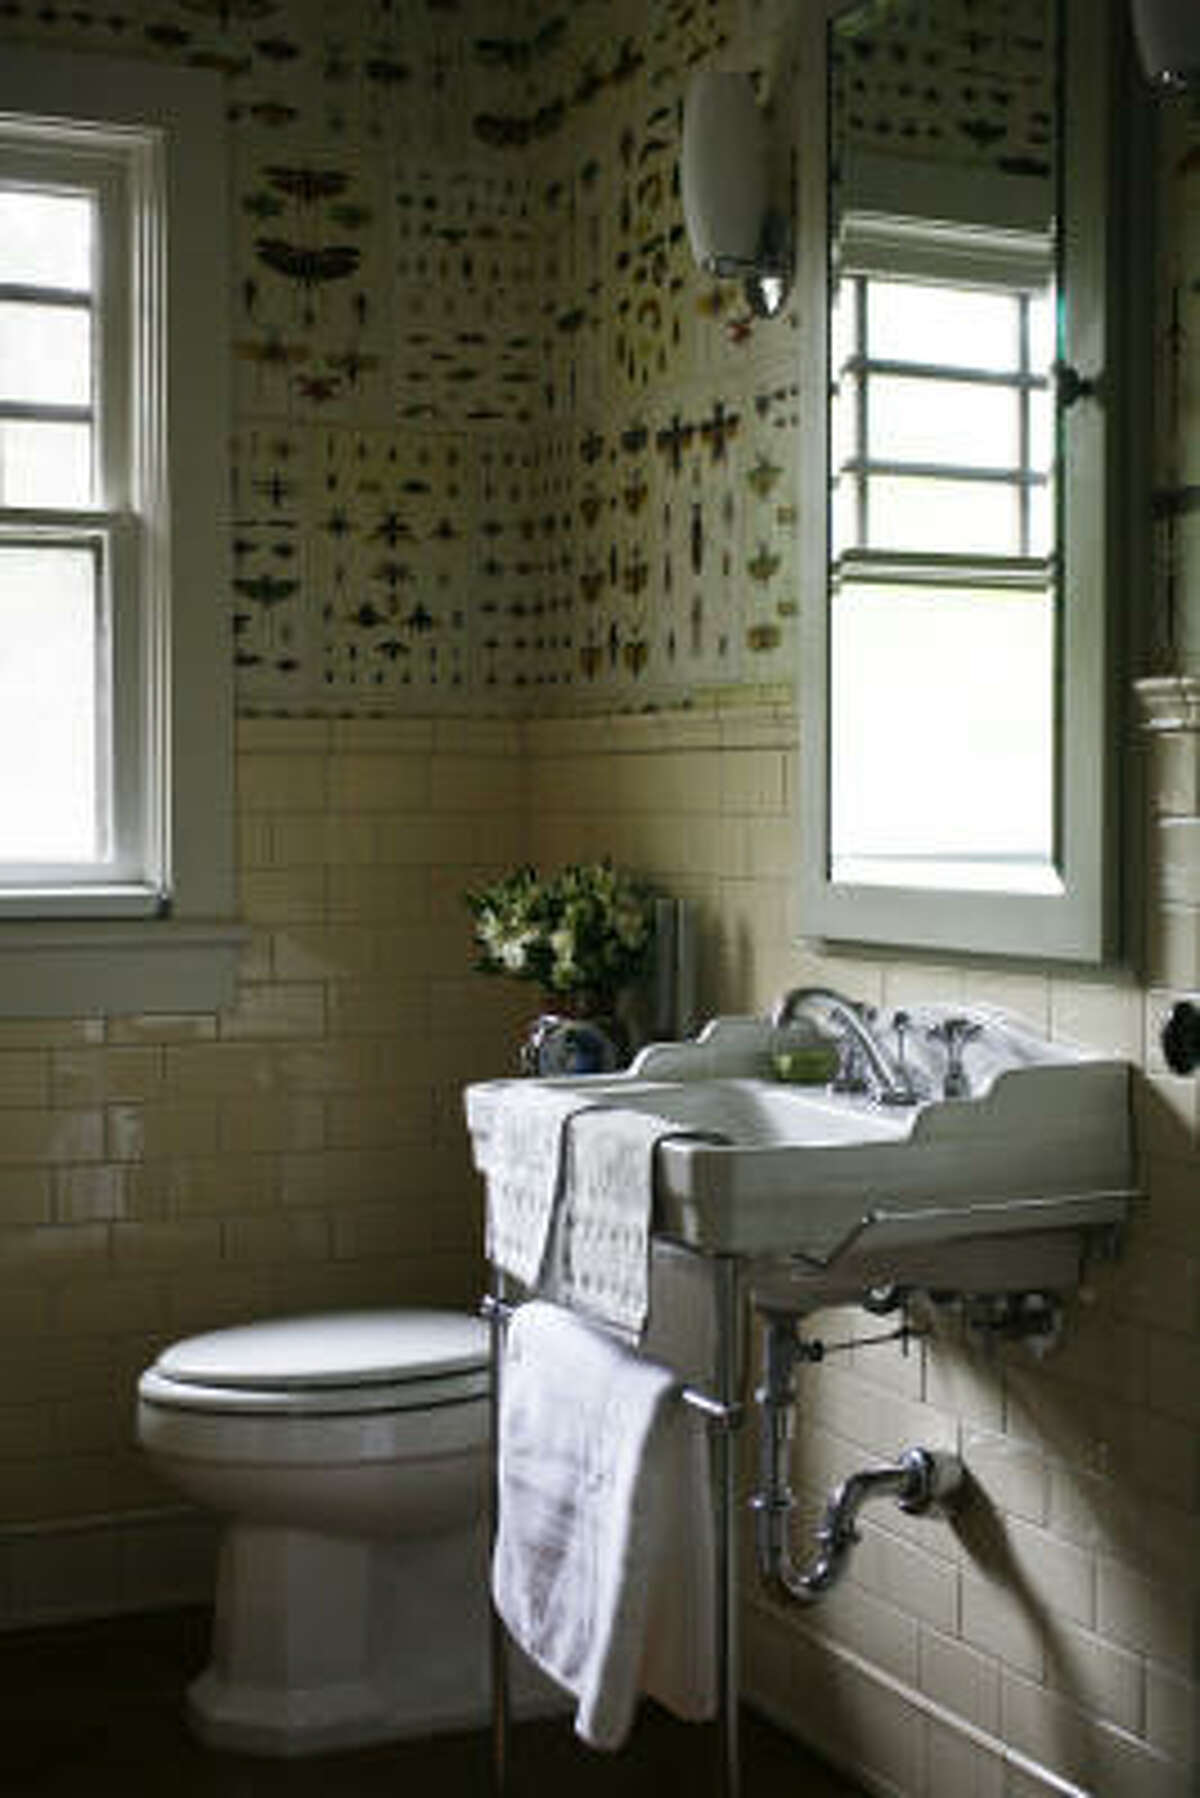 The bathroom is one of a kind, with walls papered in pages from Cabinet of Natural Curiosities by Albertus Seba.